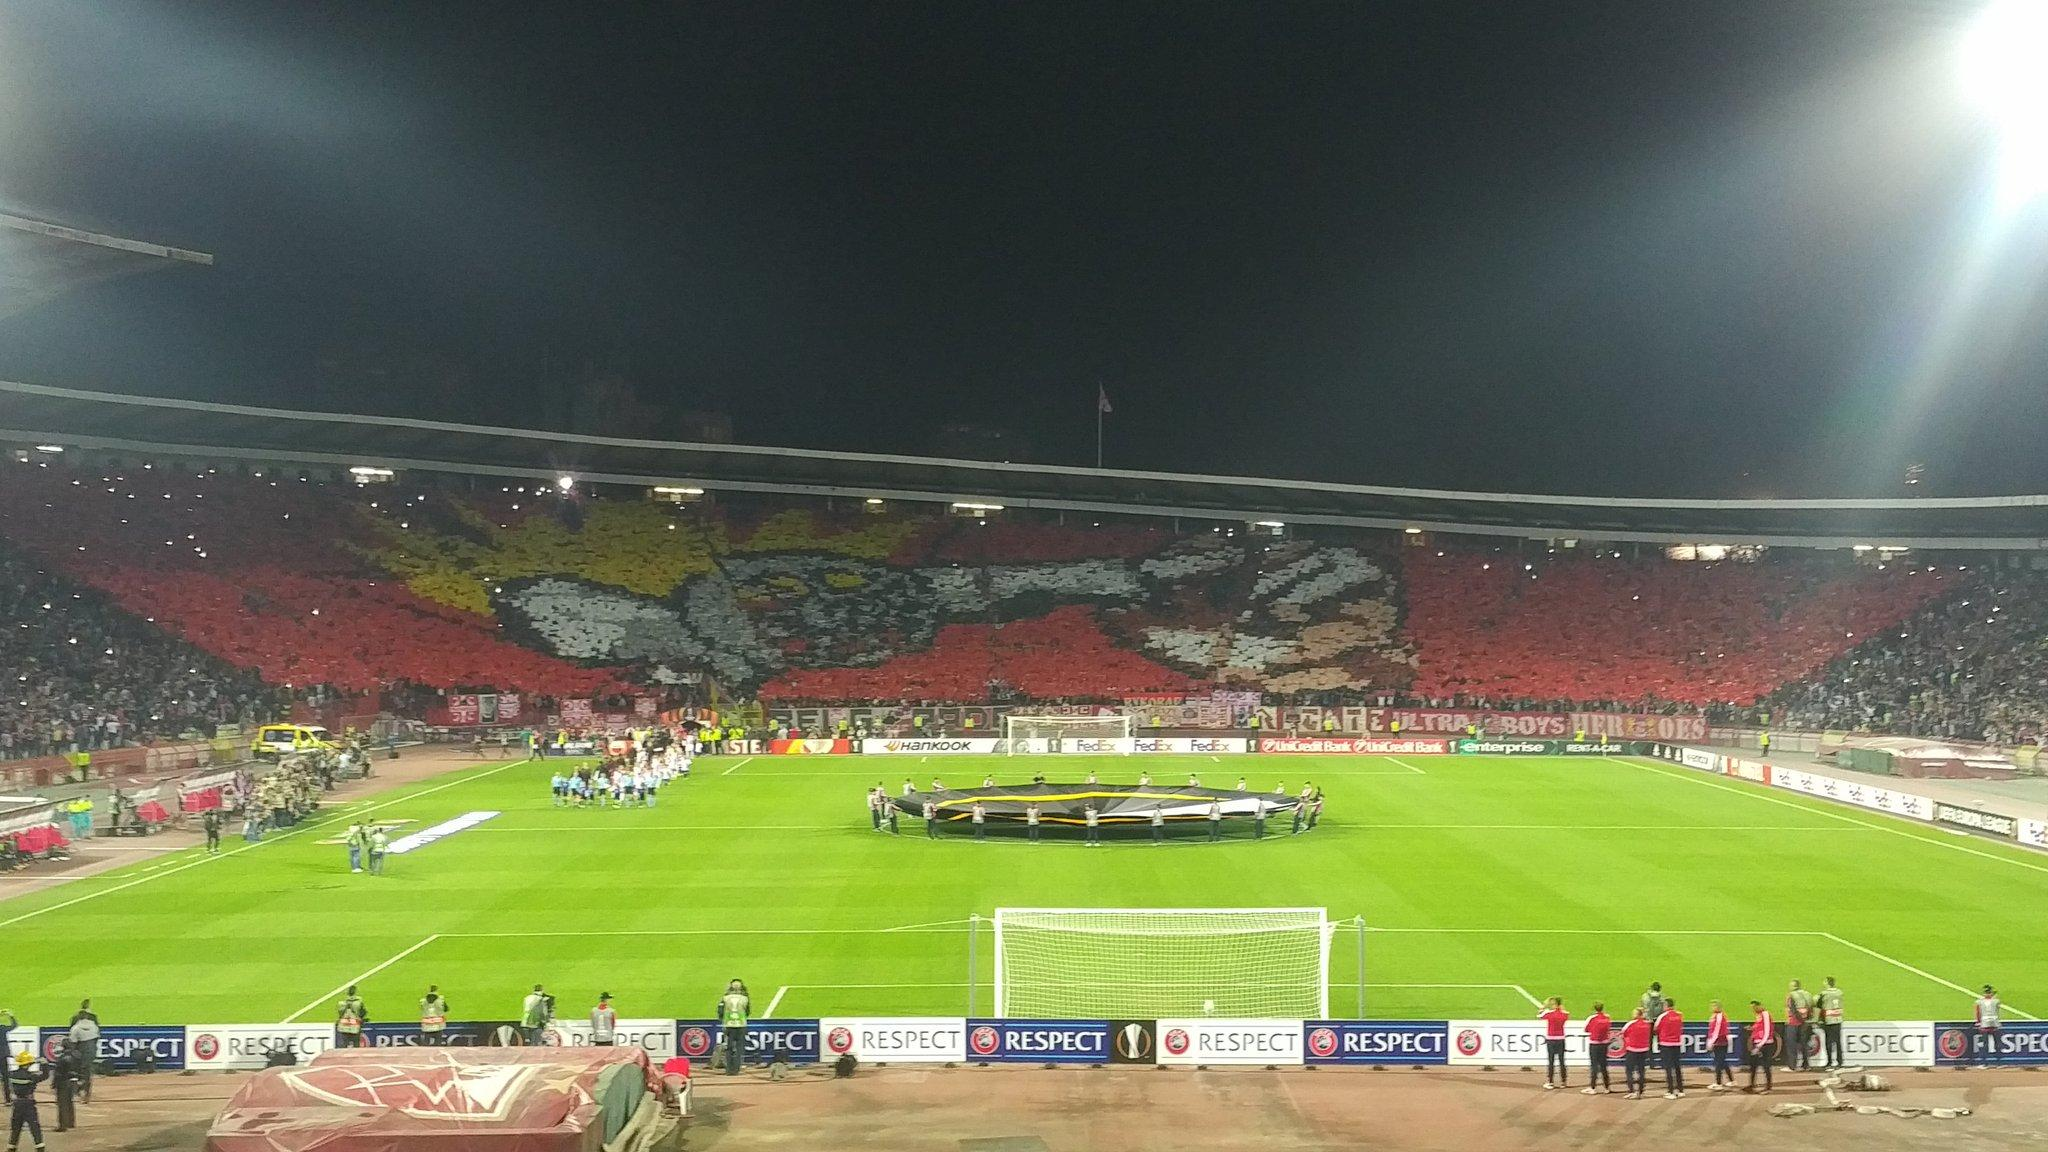 Interesting choreography before the match by Red Star fans :) : Gunners